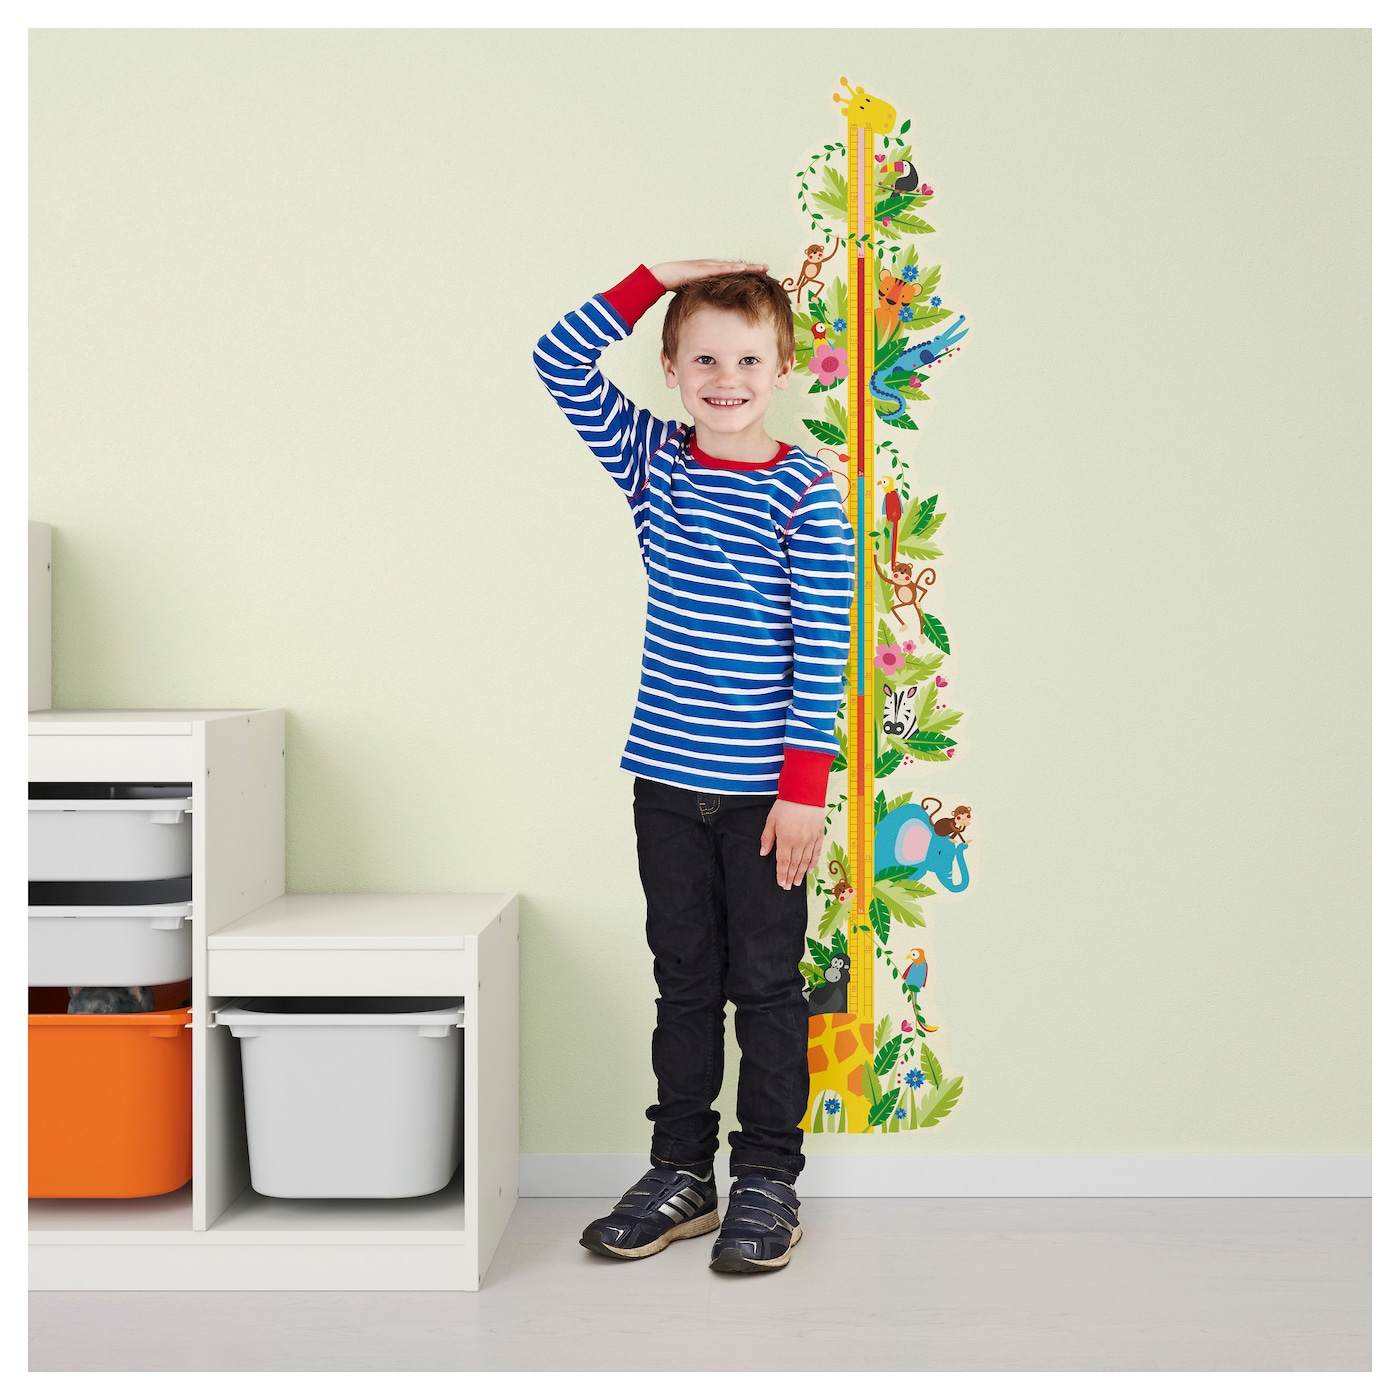 klAtta decoration stickers jungle height chart 135x31 cm ikea ikea klAtta decoration stickers